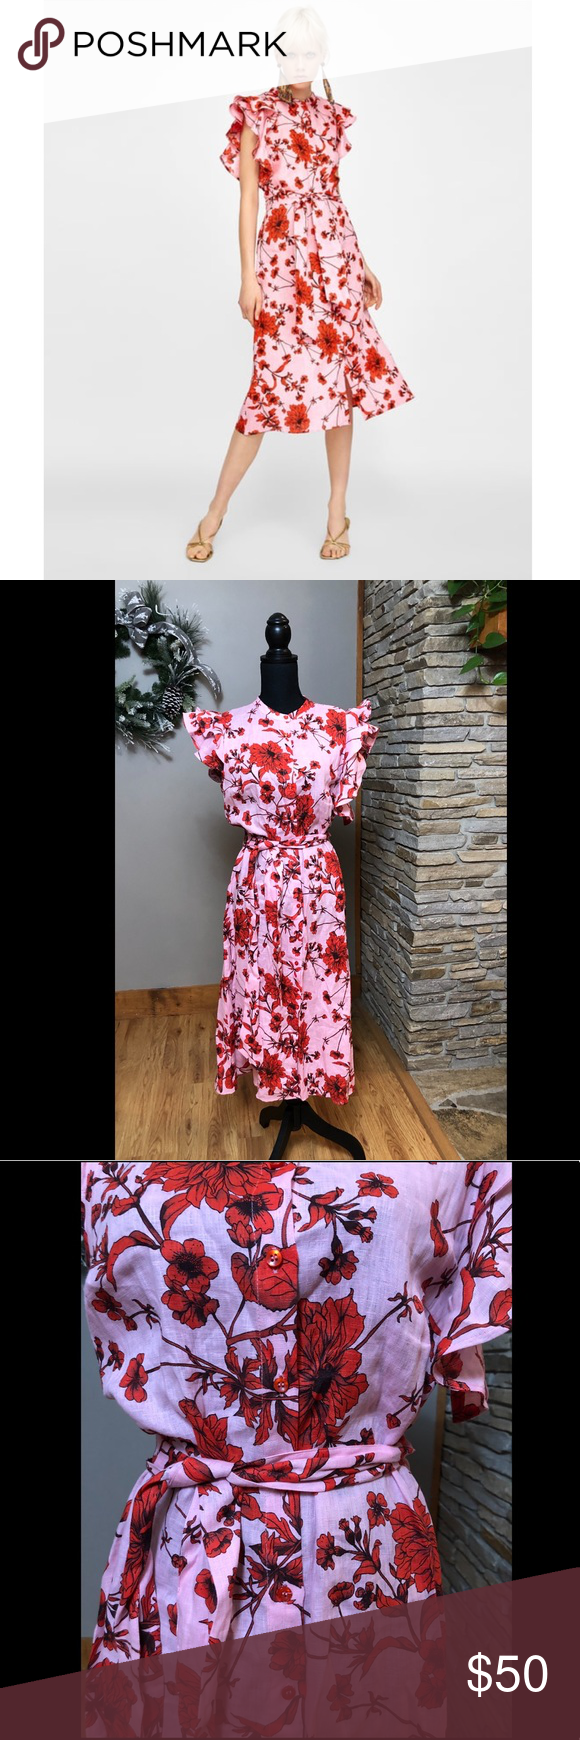 3de3a951c6d9 NWT Floral Print Linen Tunic Dress Stand-up collar tunic with short ruffled  sleeves, tied belt in matching fabric and button fastening in the front.  Zara ...